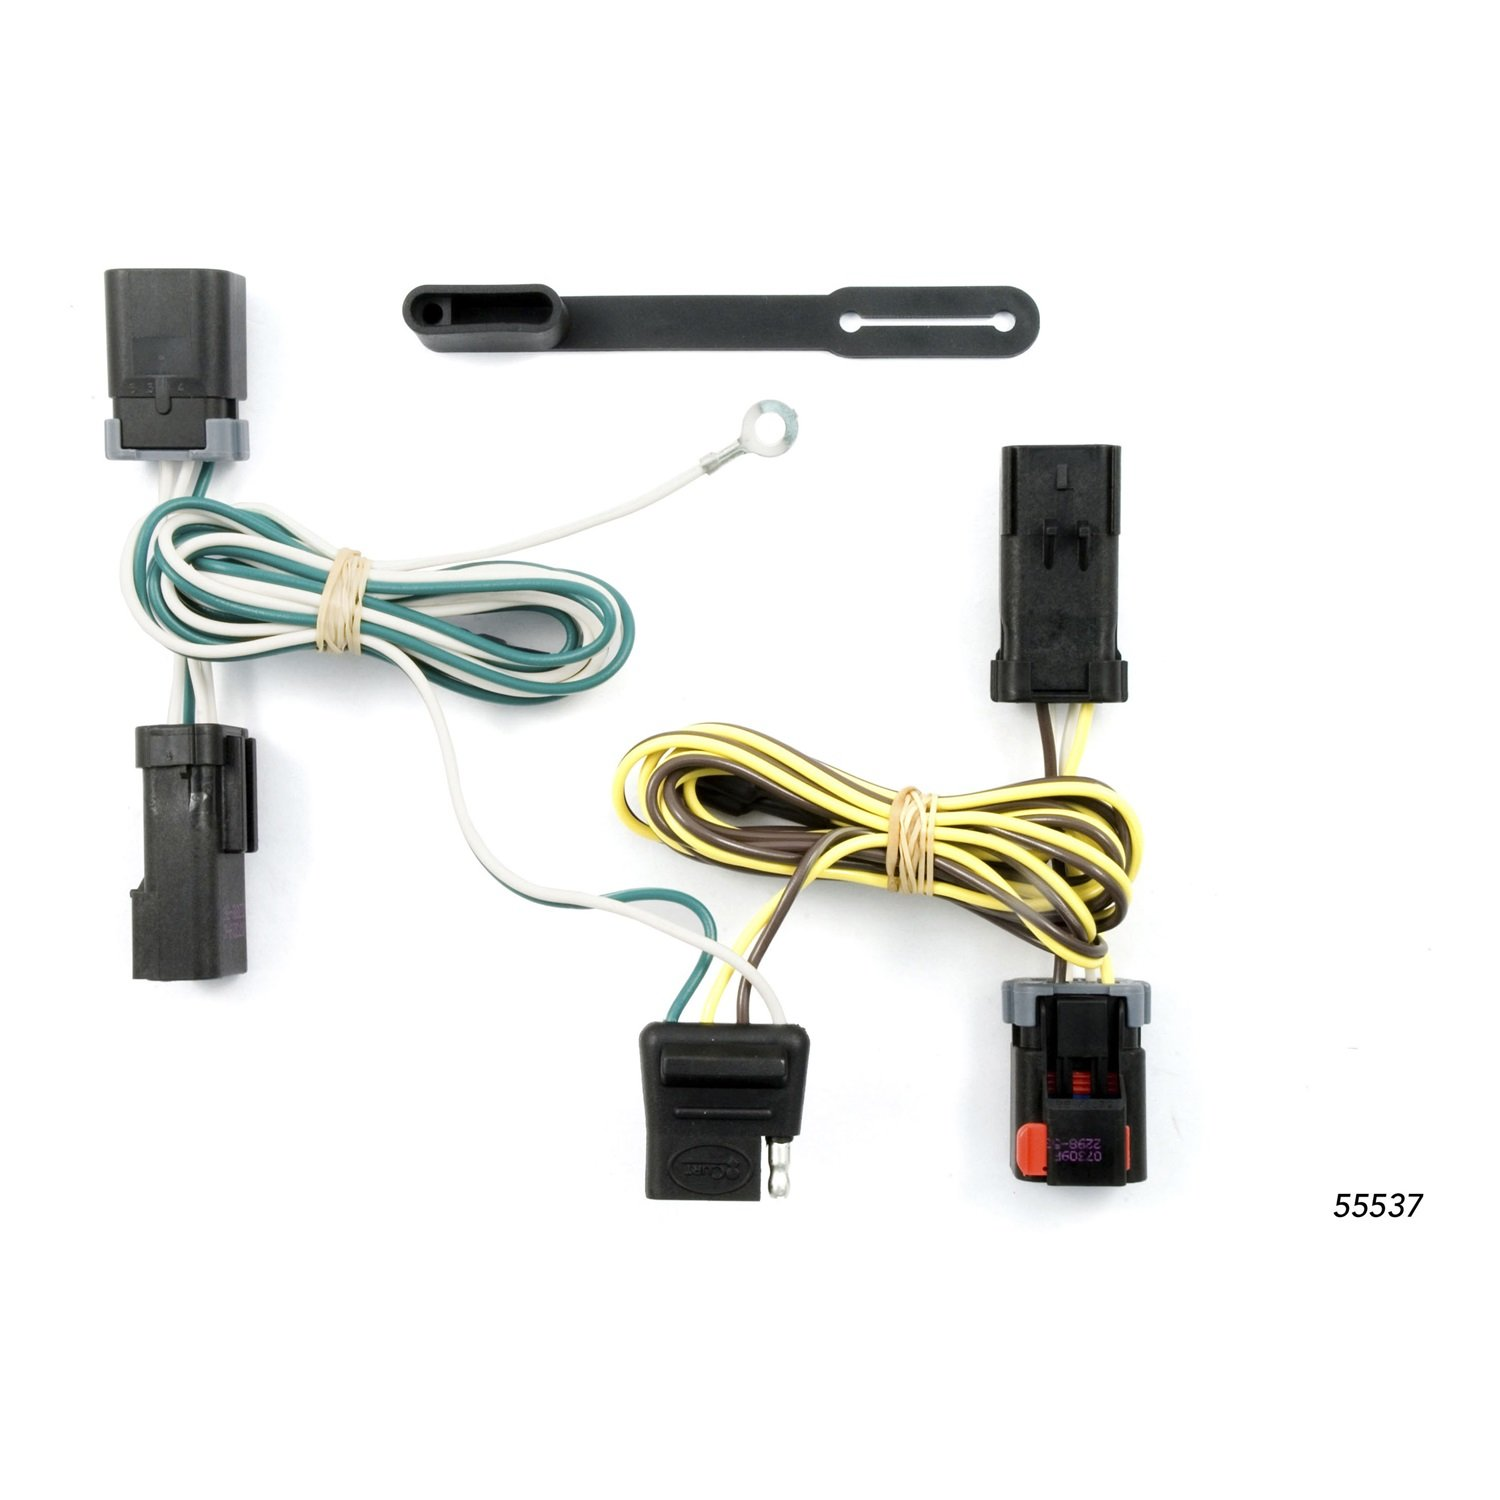 Hang Wiring Harness Trailer Diagrams Schematic Boat Instructions Simple Diagram Site Kit